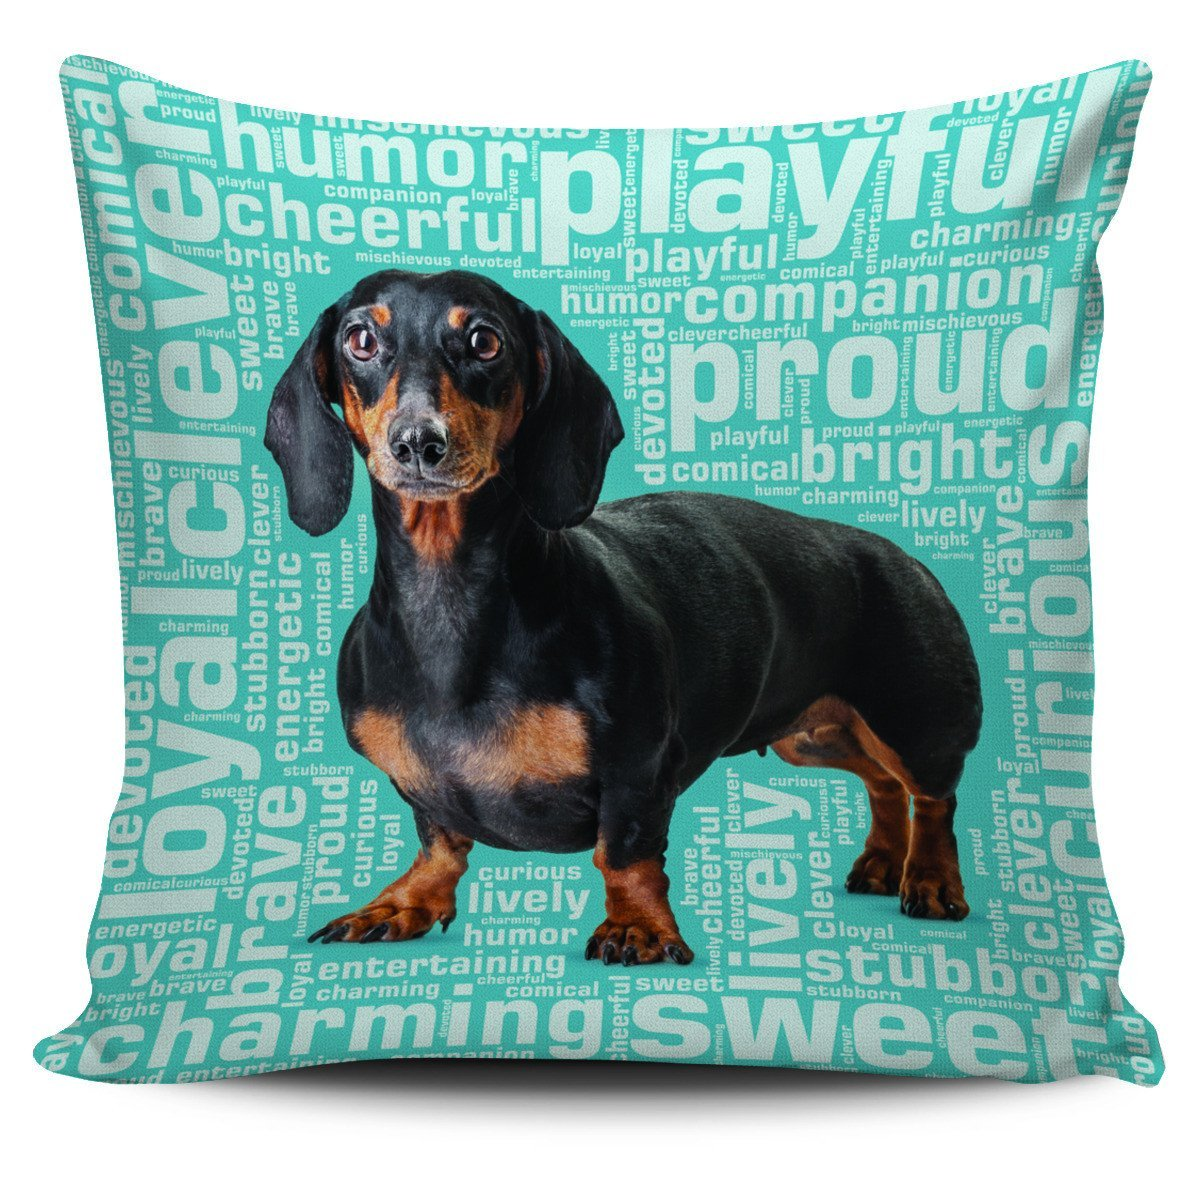 Wiener Dog Pillowcases